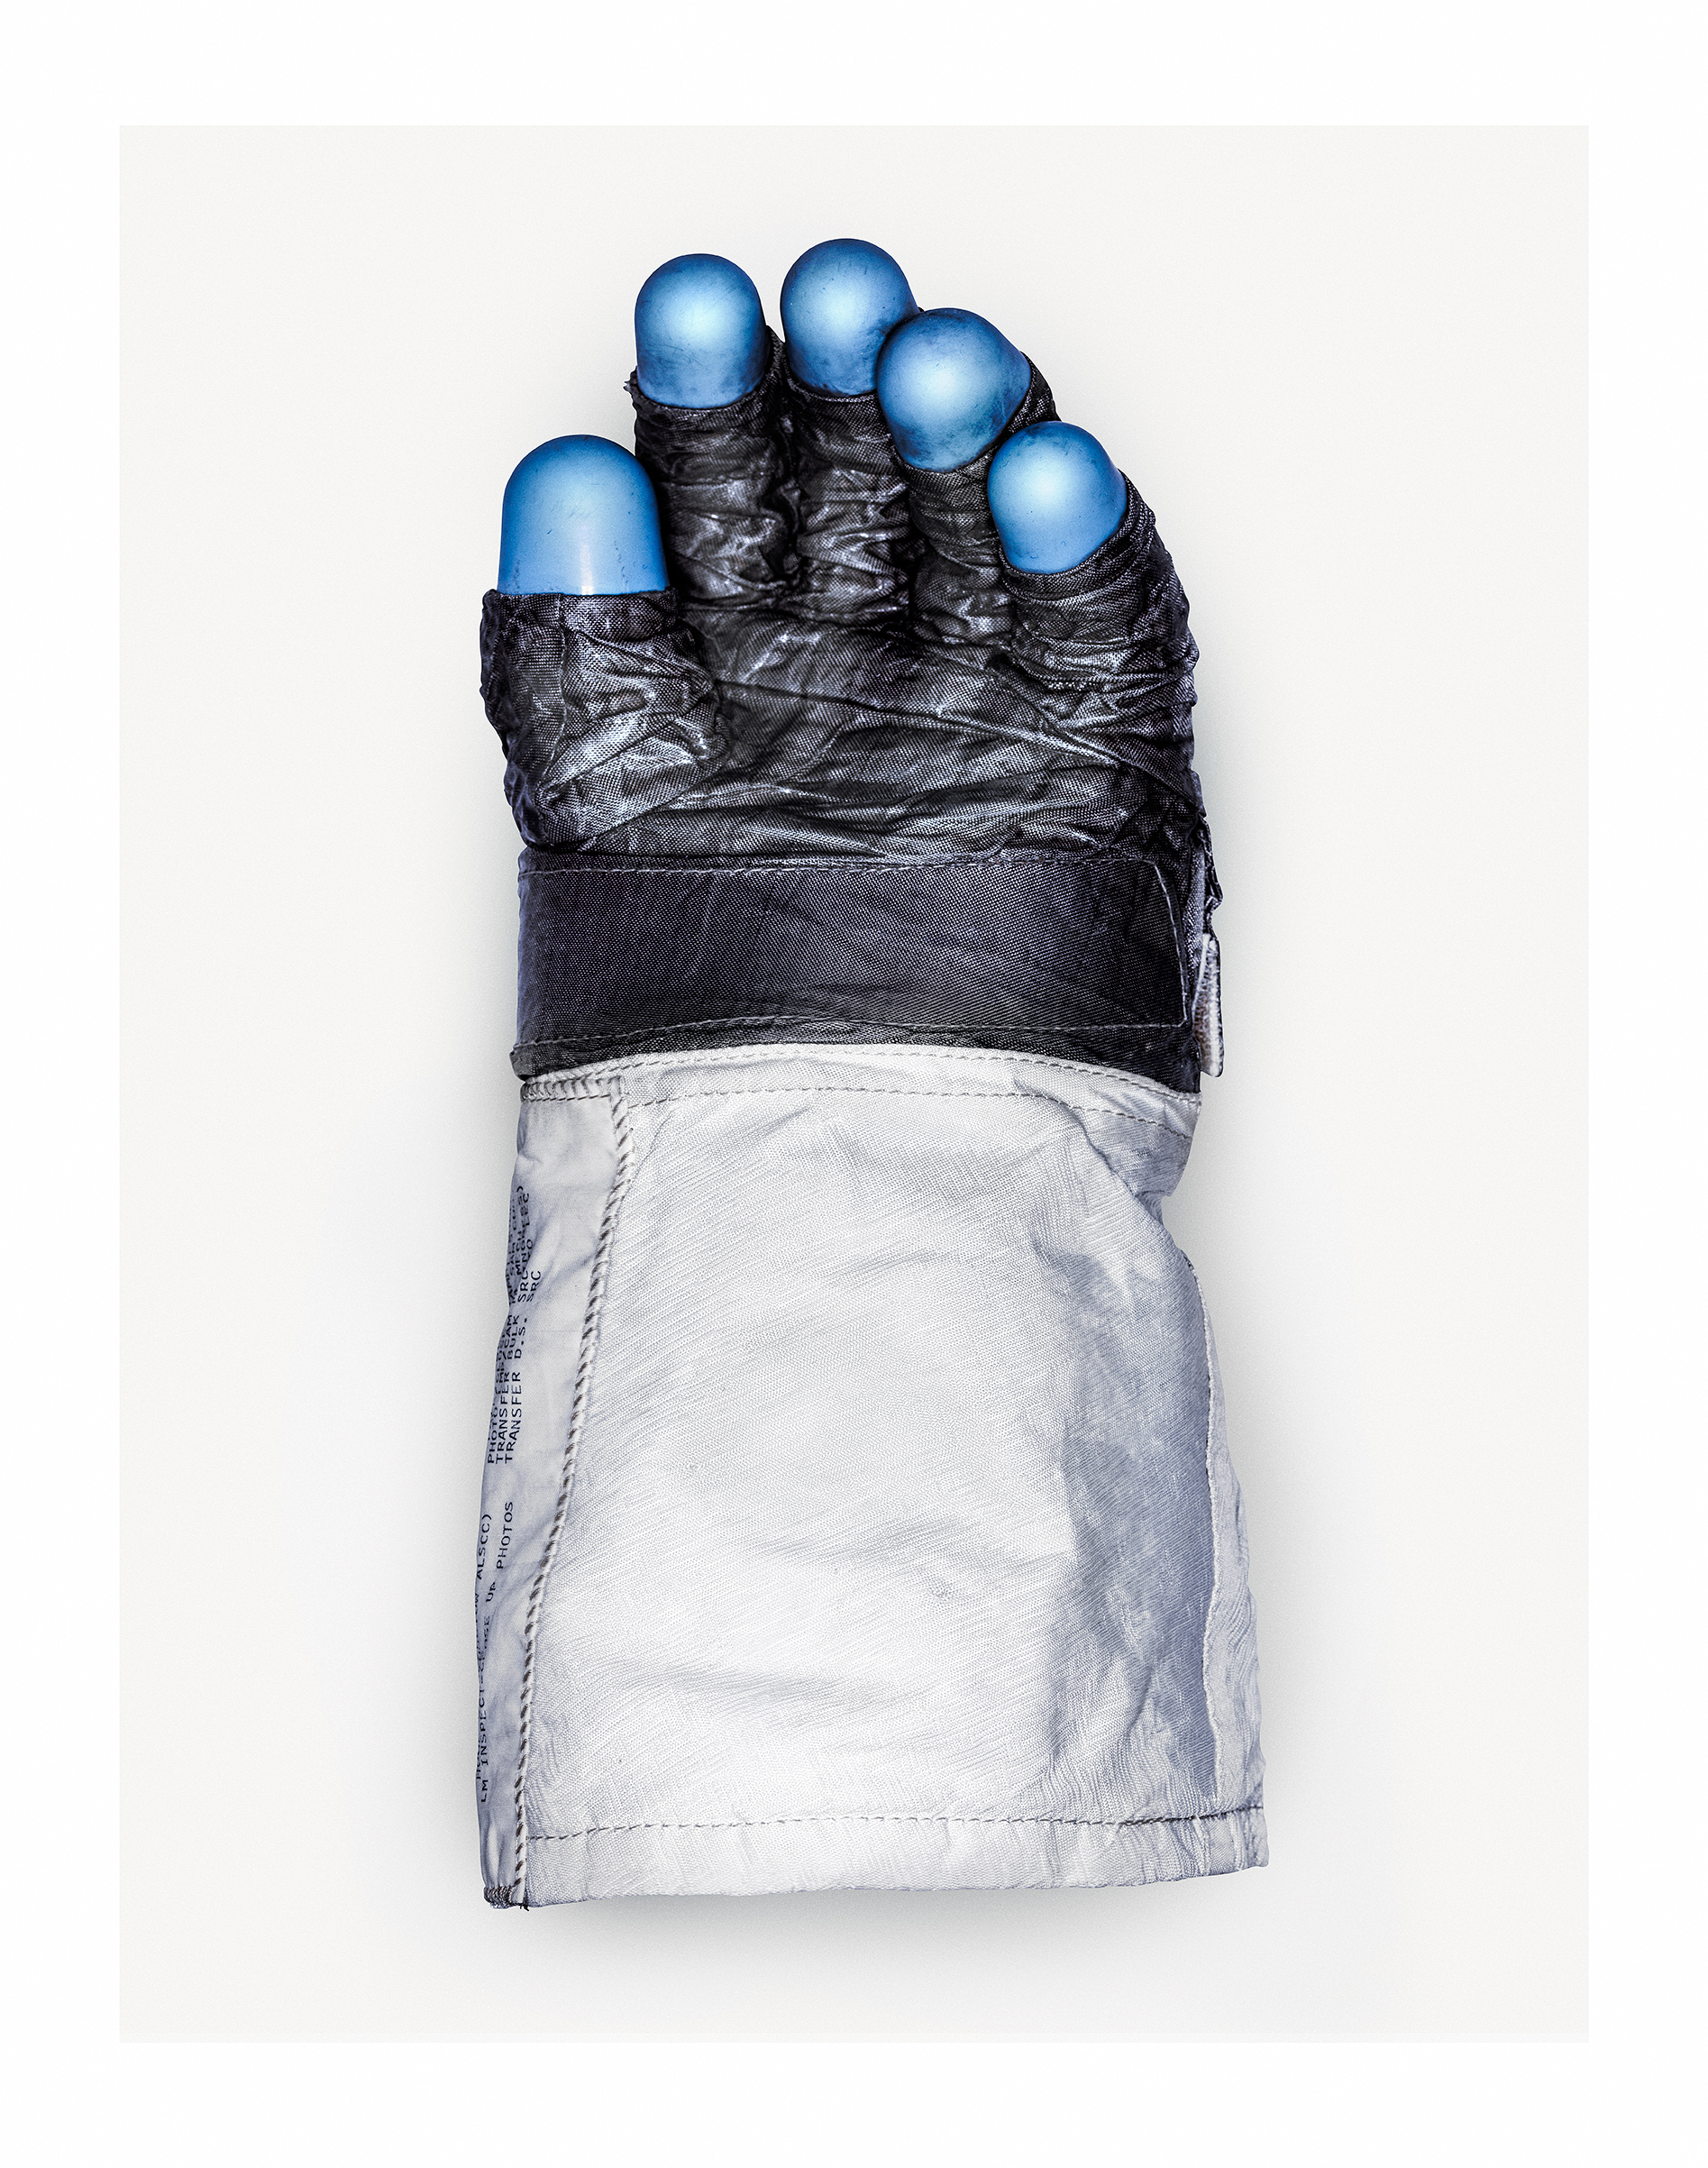 Neil Armstrong's spacesuit glove in the Smithsonian Institution lab where it is being restored